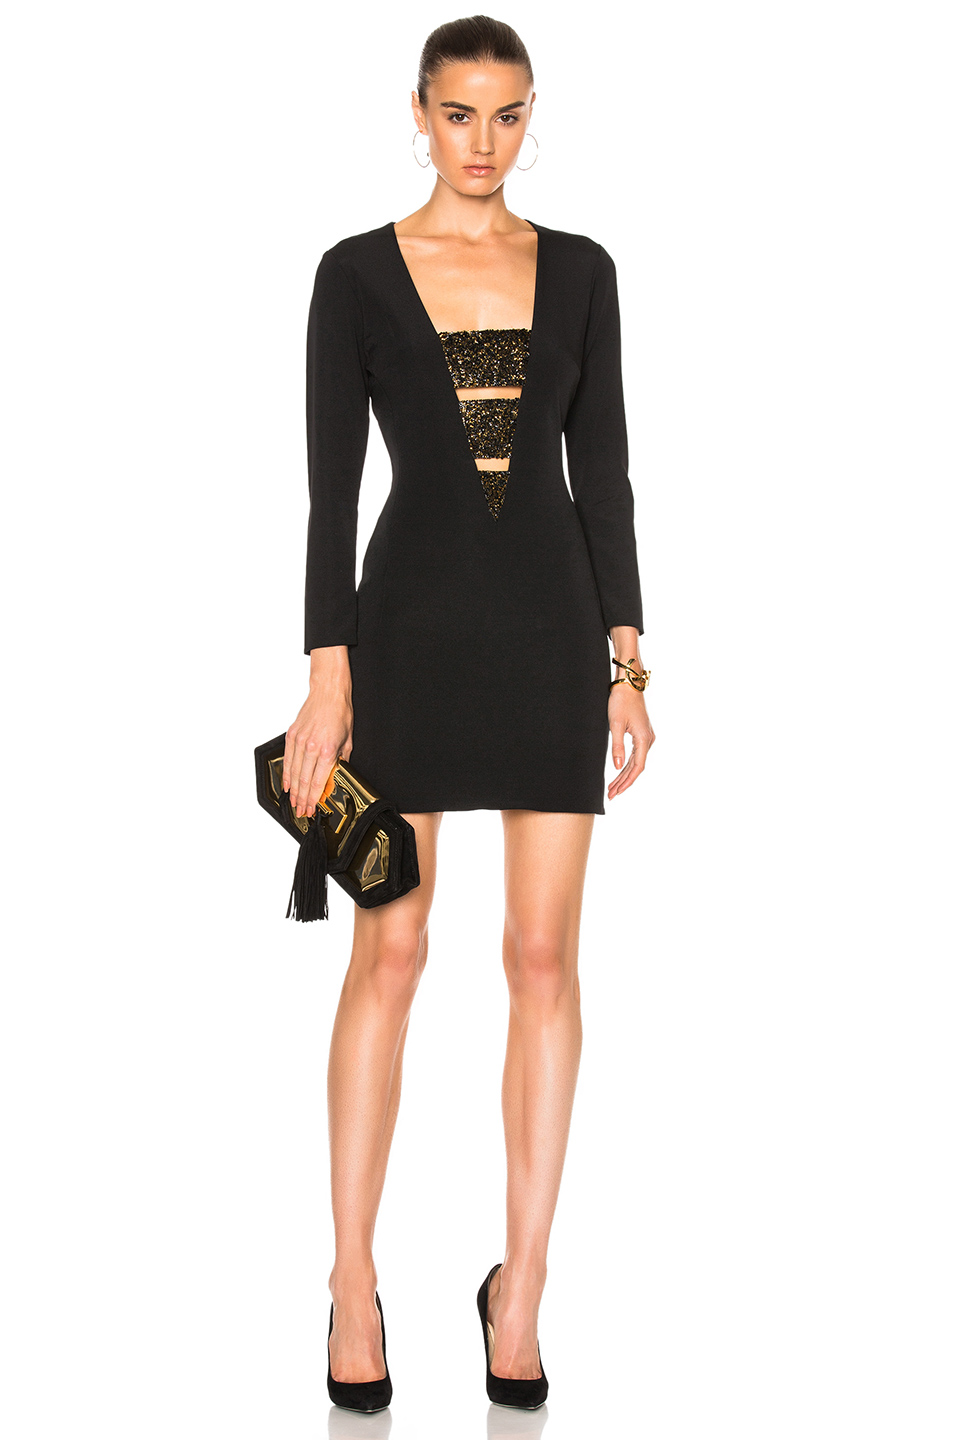 HANEY Daphne Dress in Black